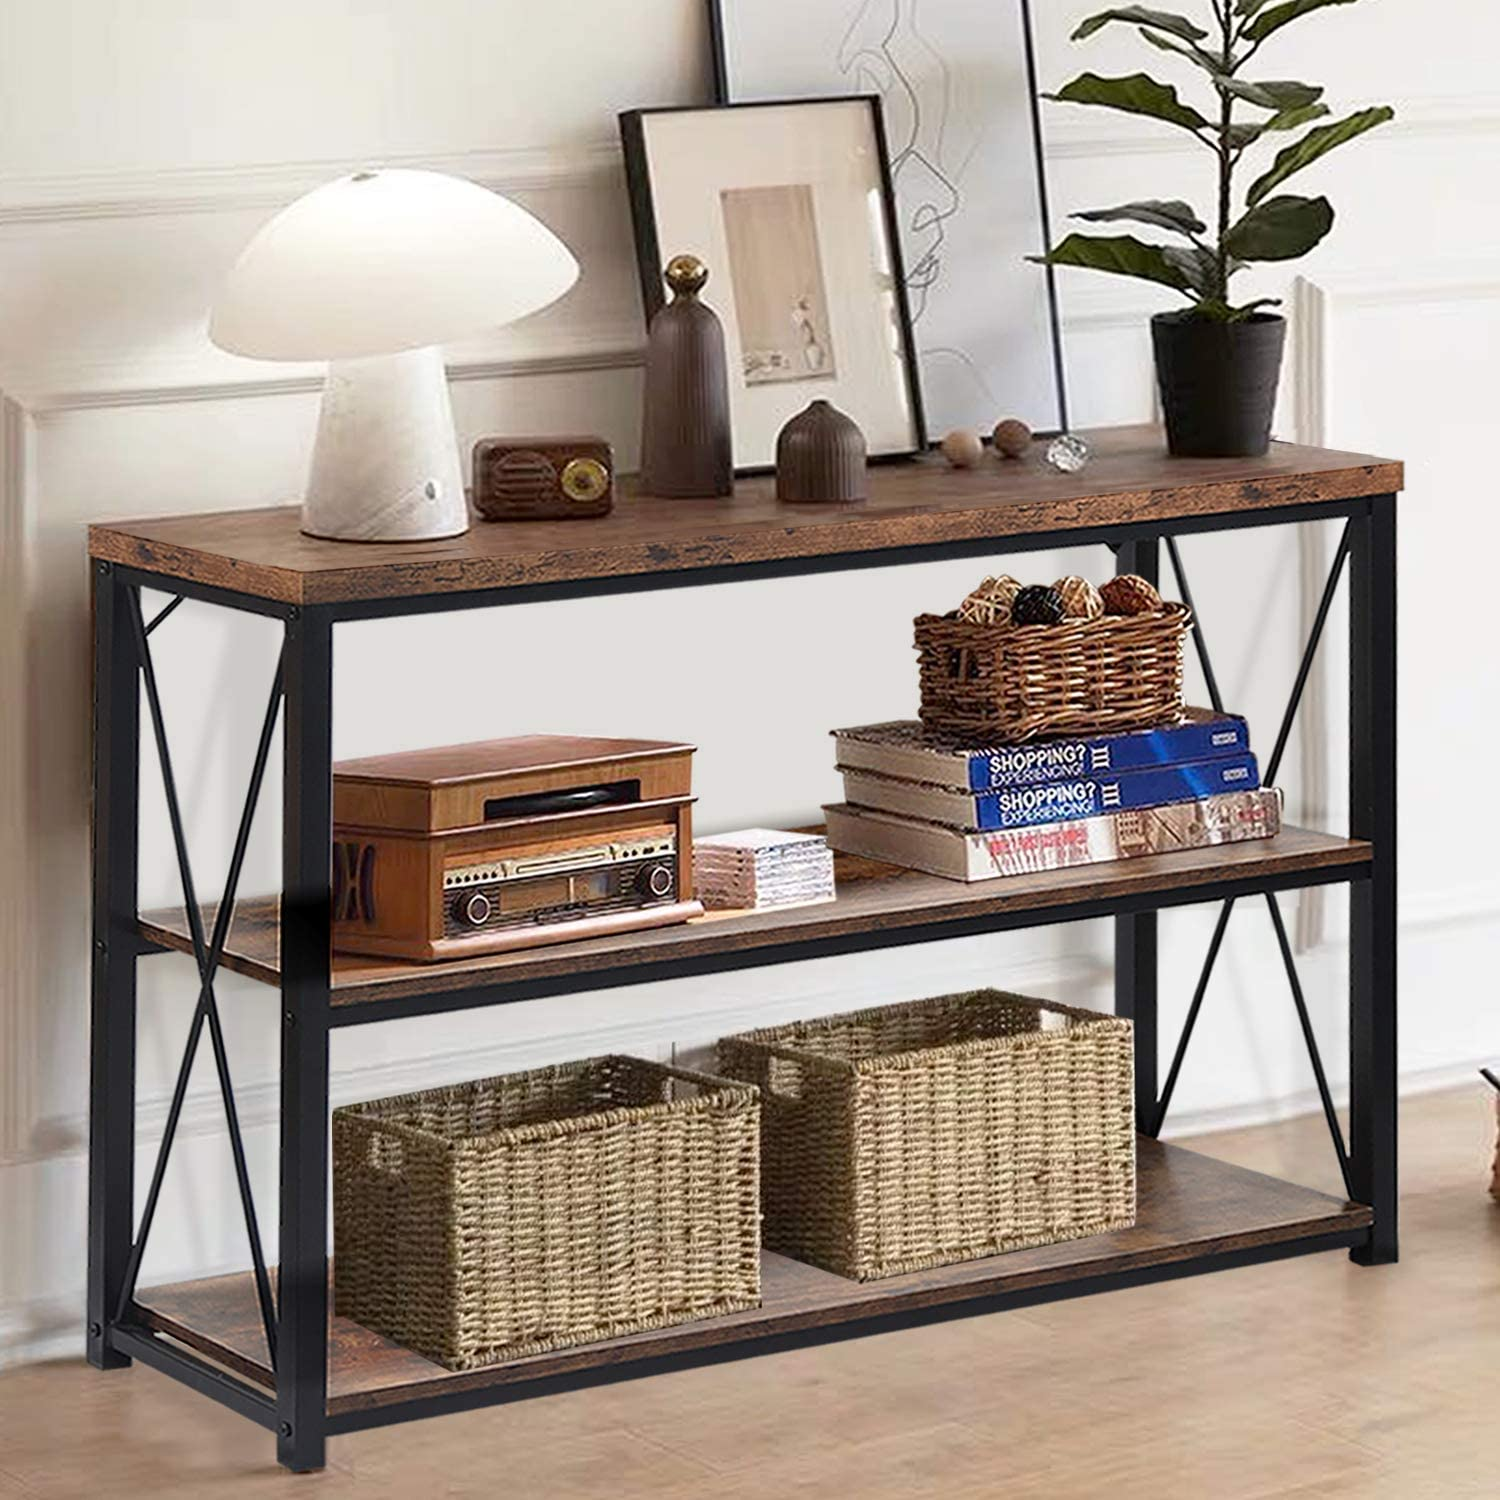 NSdirect Console Sofa Table, Rustic Console Table&TV Stand,Industrial 3-Tier Long Hallway/Entryway Table with Storage Open Bookshelf for Living Room Bedroom Entryway,Brown Oak